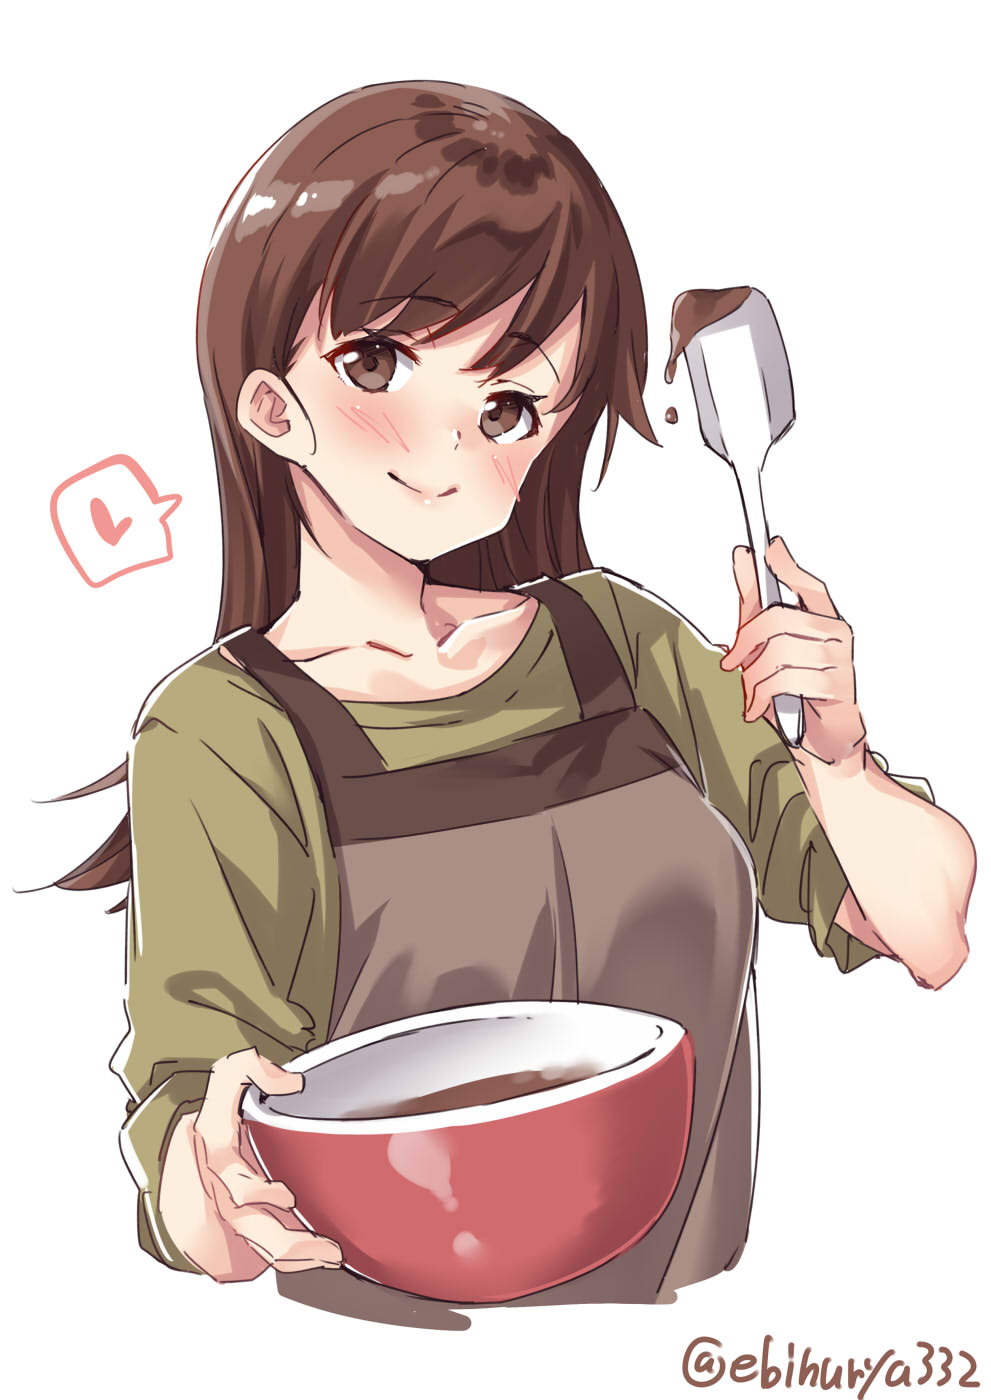 1girl apron blush bowl breasts brown_eyes brown_hair casual chocolate collarbone contemporary ebifurya green_shirt hair_between_eyes head_tilt heart highres kantai_collection large_breasts long_hair ooi_(kantai_collection) school_uniform serafuku shirt sleeves_rolled_up smile solo spoken_heart twitter_username upper_body white_background